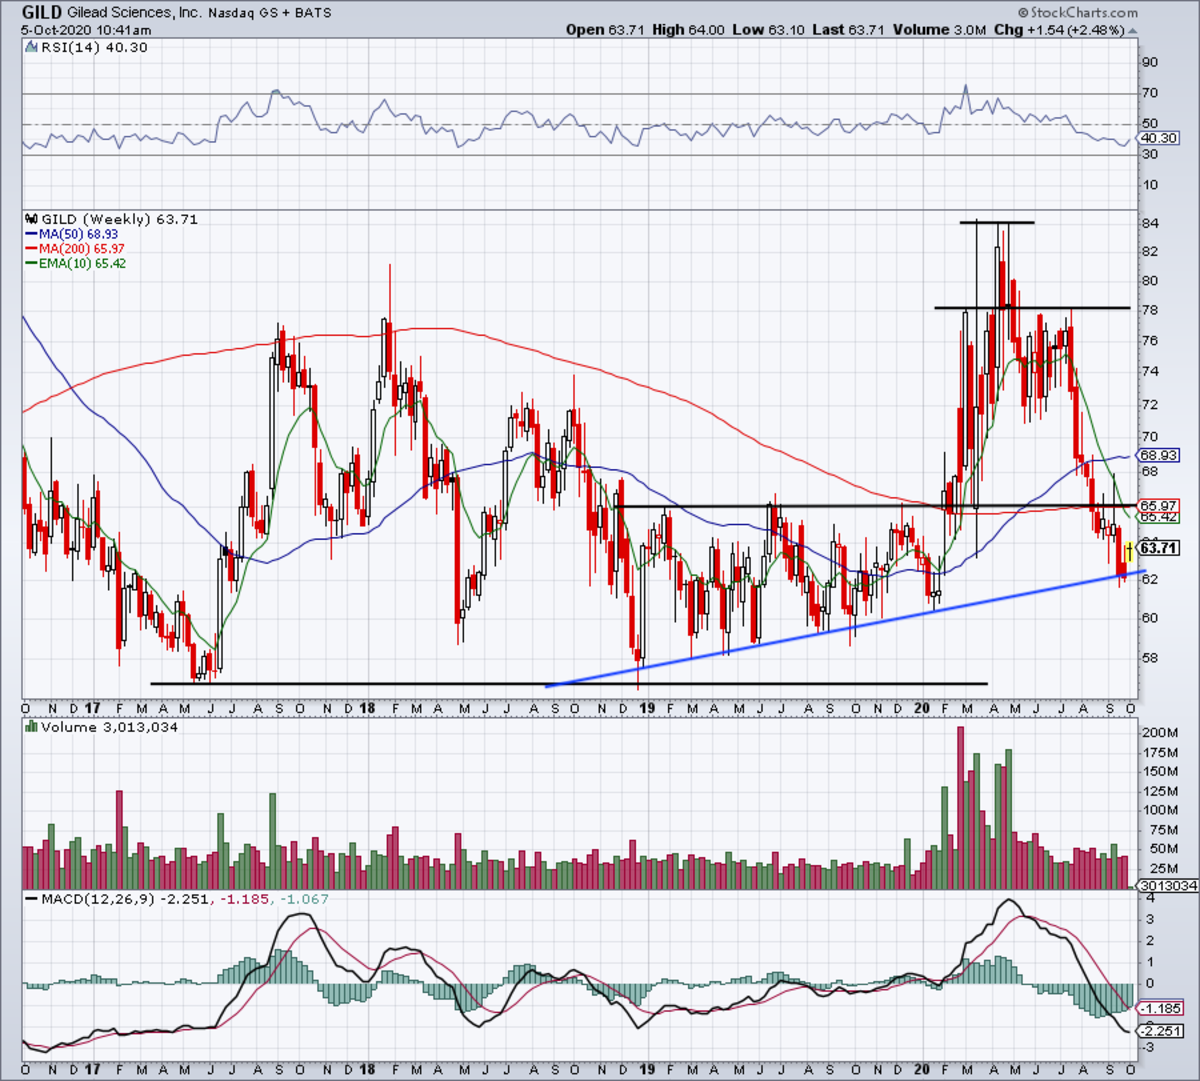 Daily chart of Gilead stock.